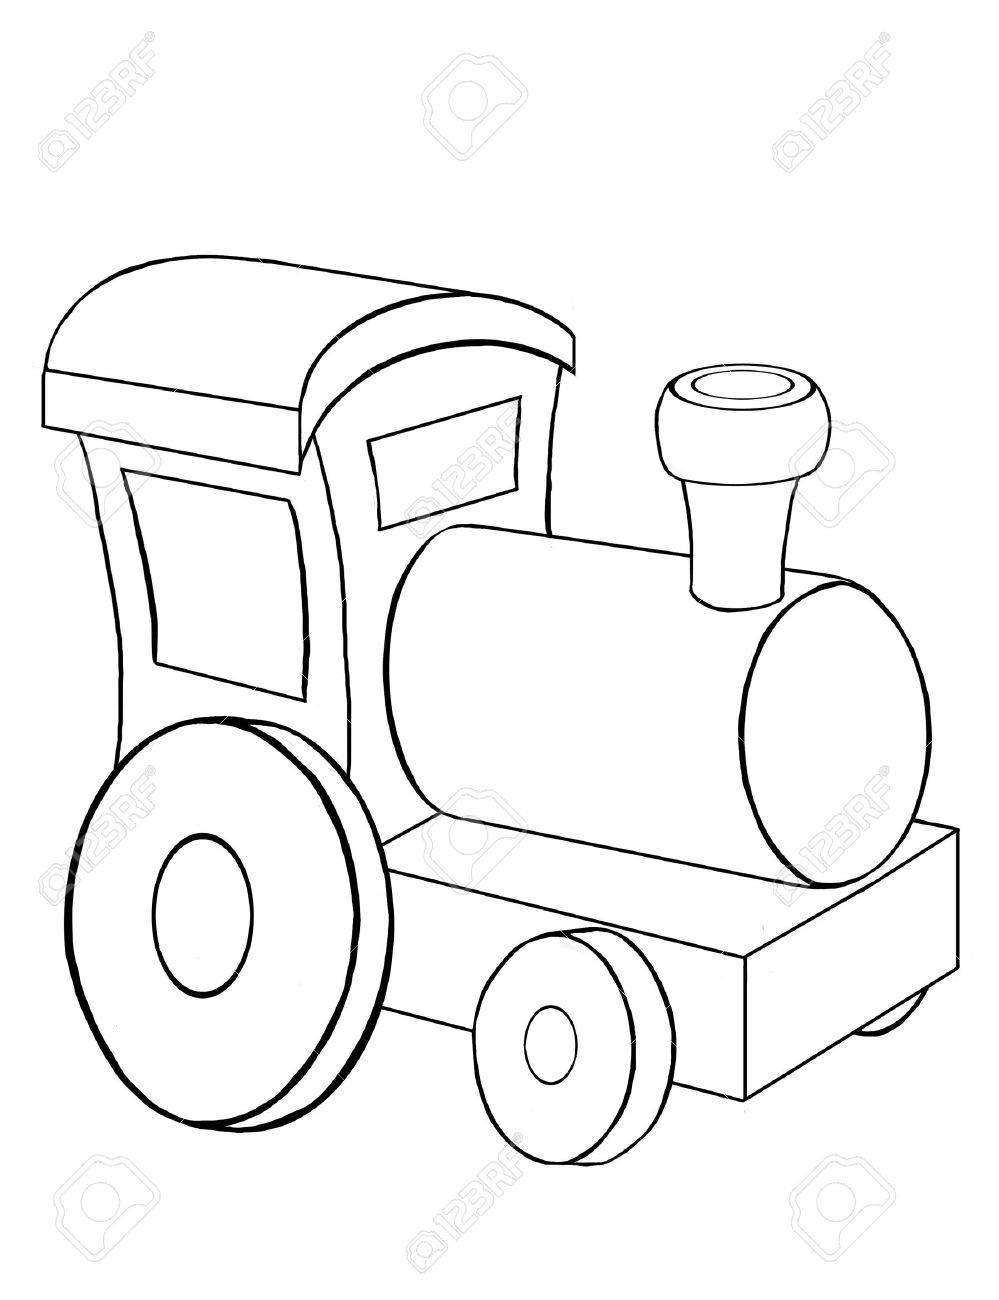 contour drawing of the little toy train stock photo picture and